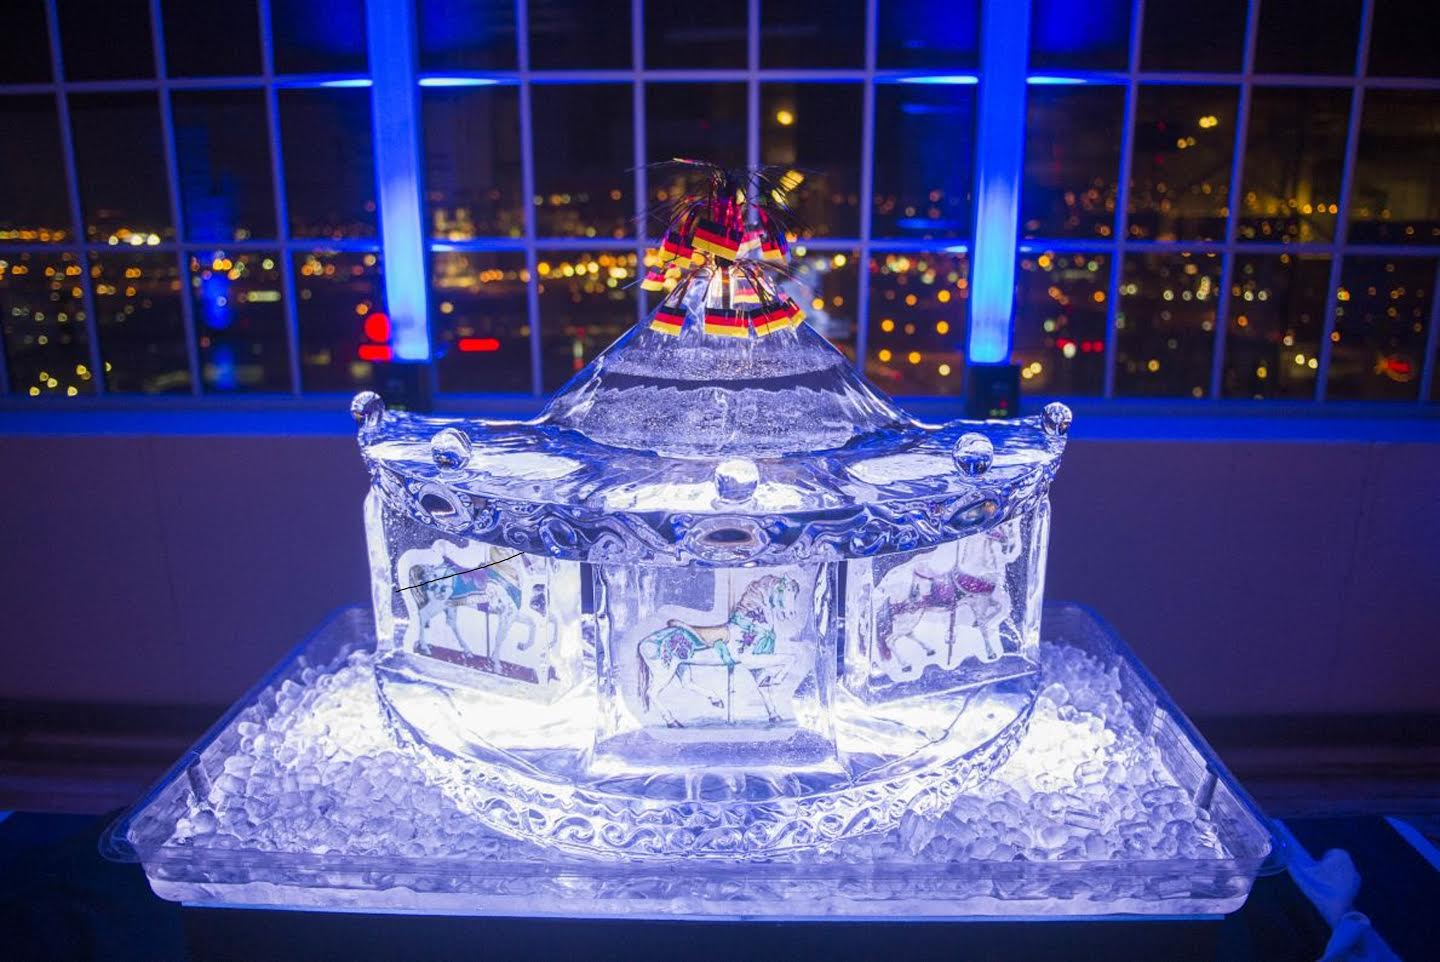 ice-scultpures-pittsburgh-pa-wedding-12.jpg